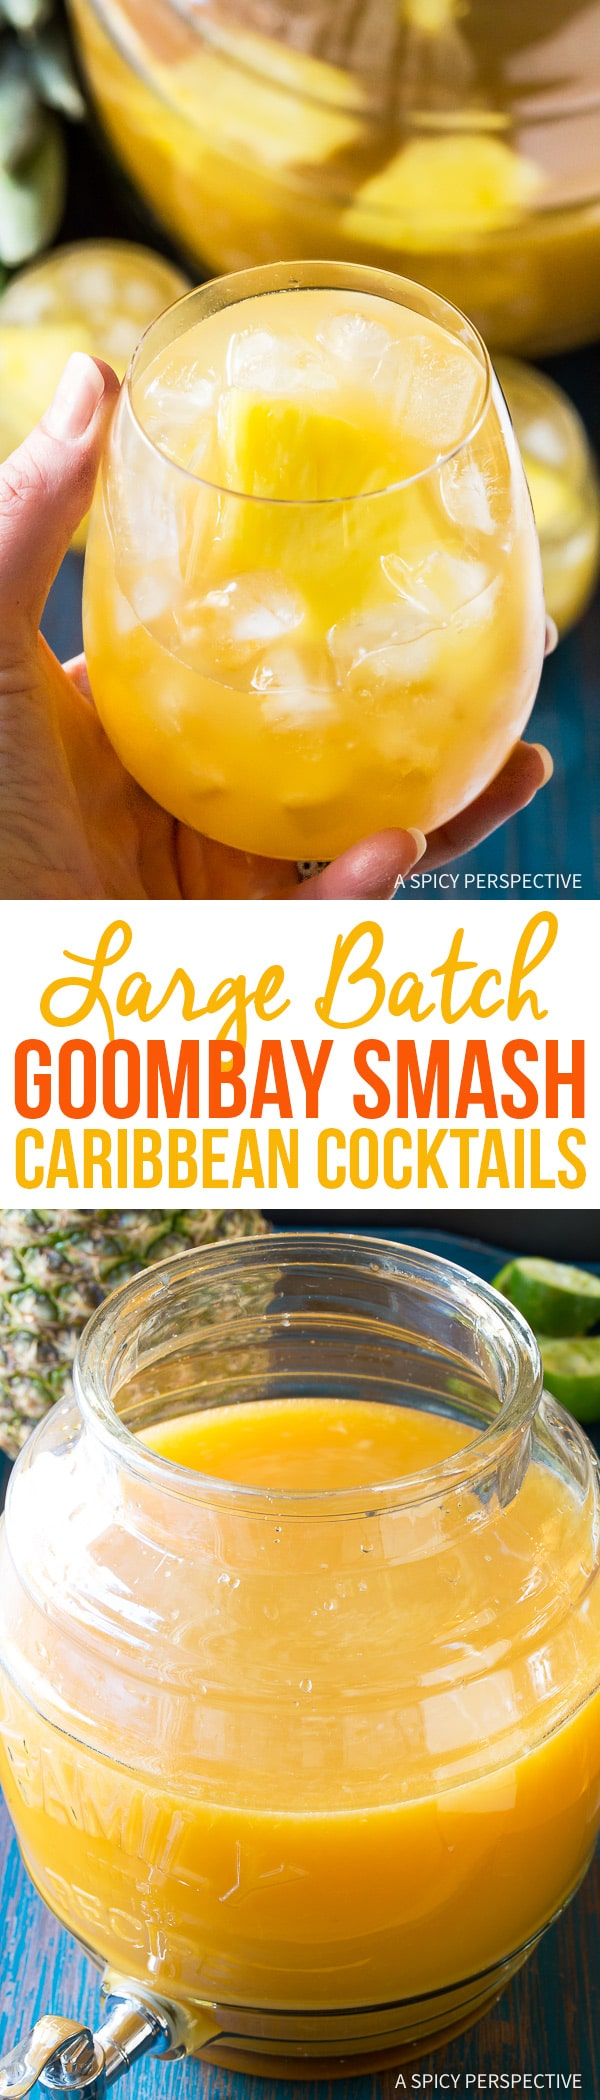 Perky Large-Batch Goombay Smash Caribbean Cocktails Recipe